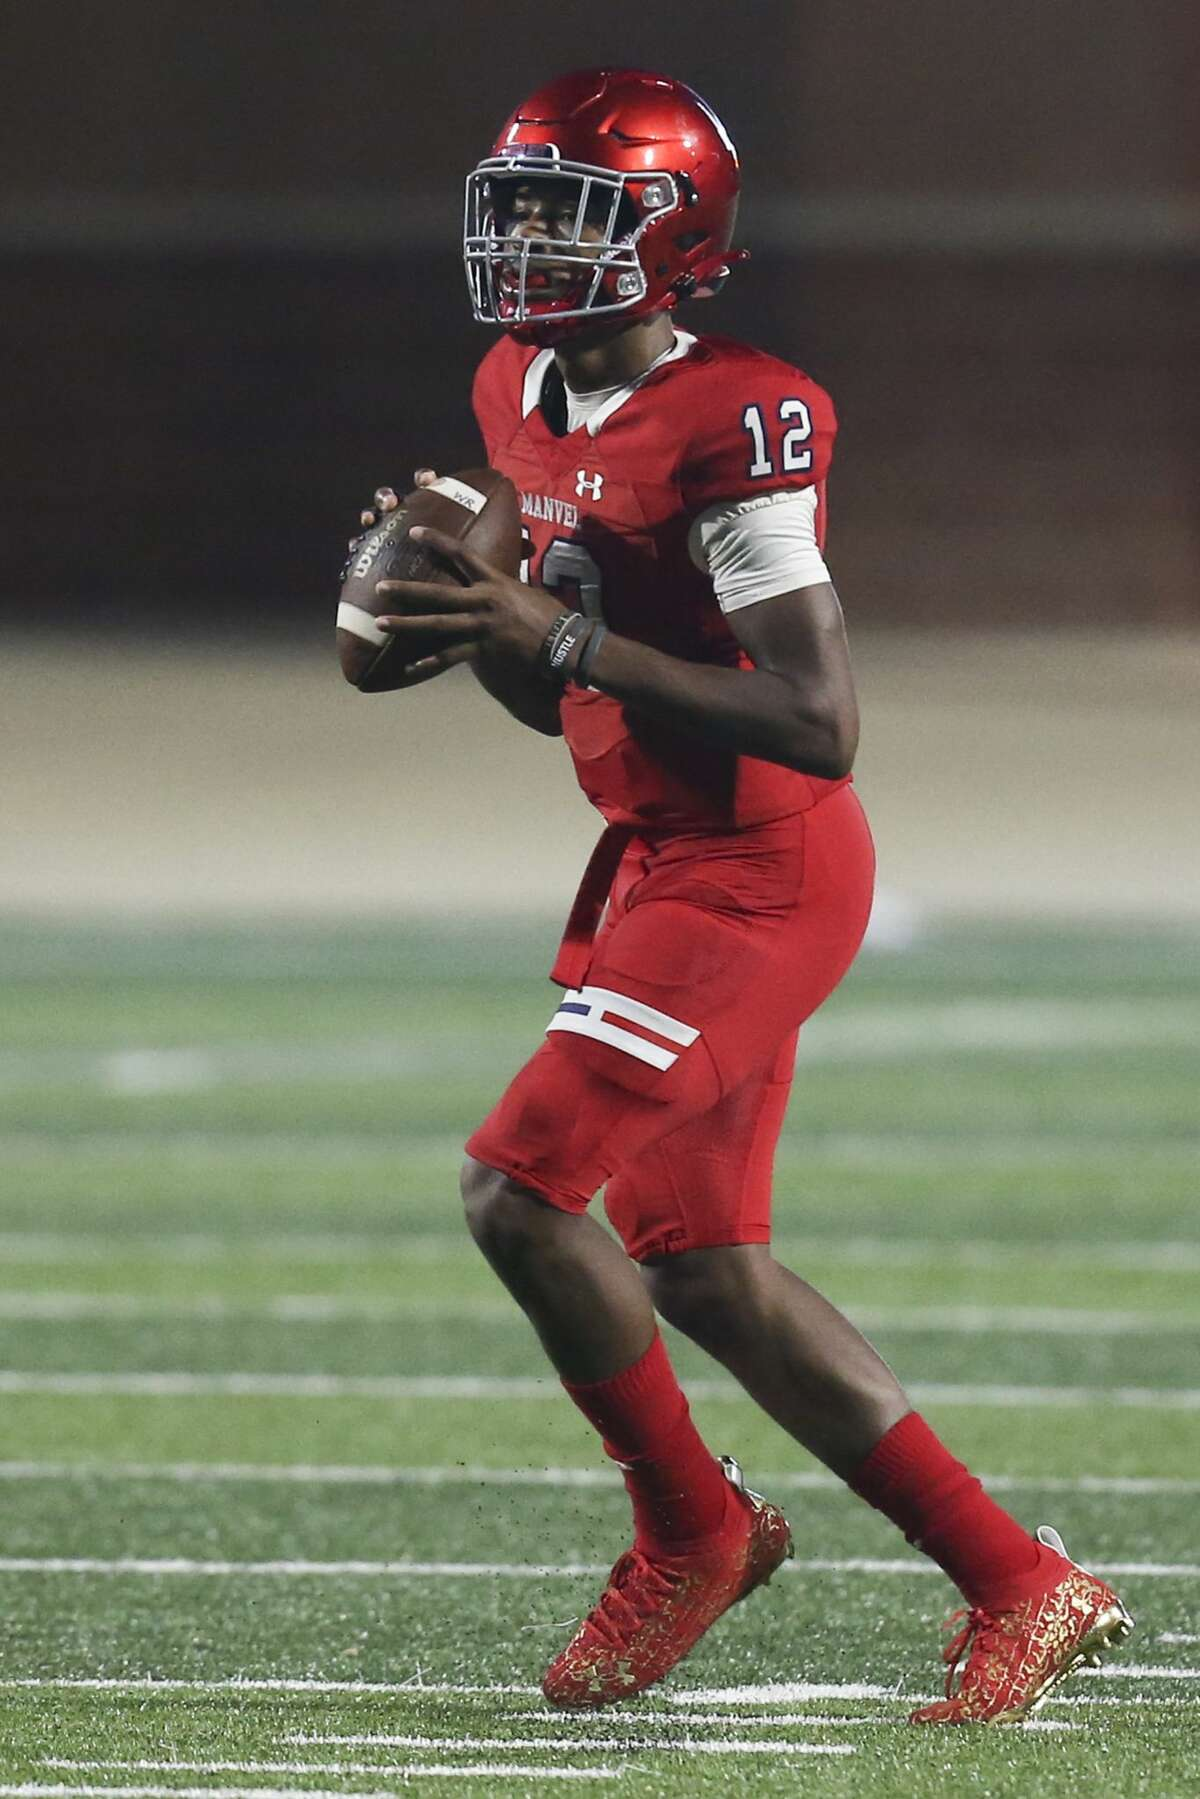 Manvel Mavericks quarterback Kaeden Smith (12) drops back in the pocket against the Crosby Cougars in the first half on September 3, 2021 at Freedom Field in Rosharon, TX.